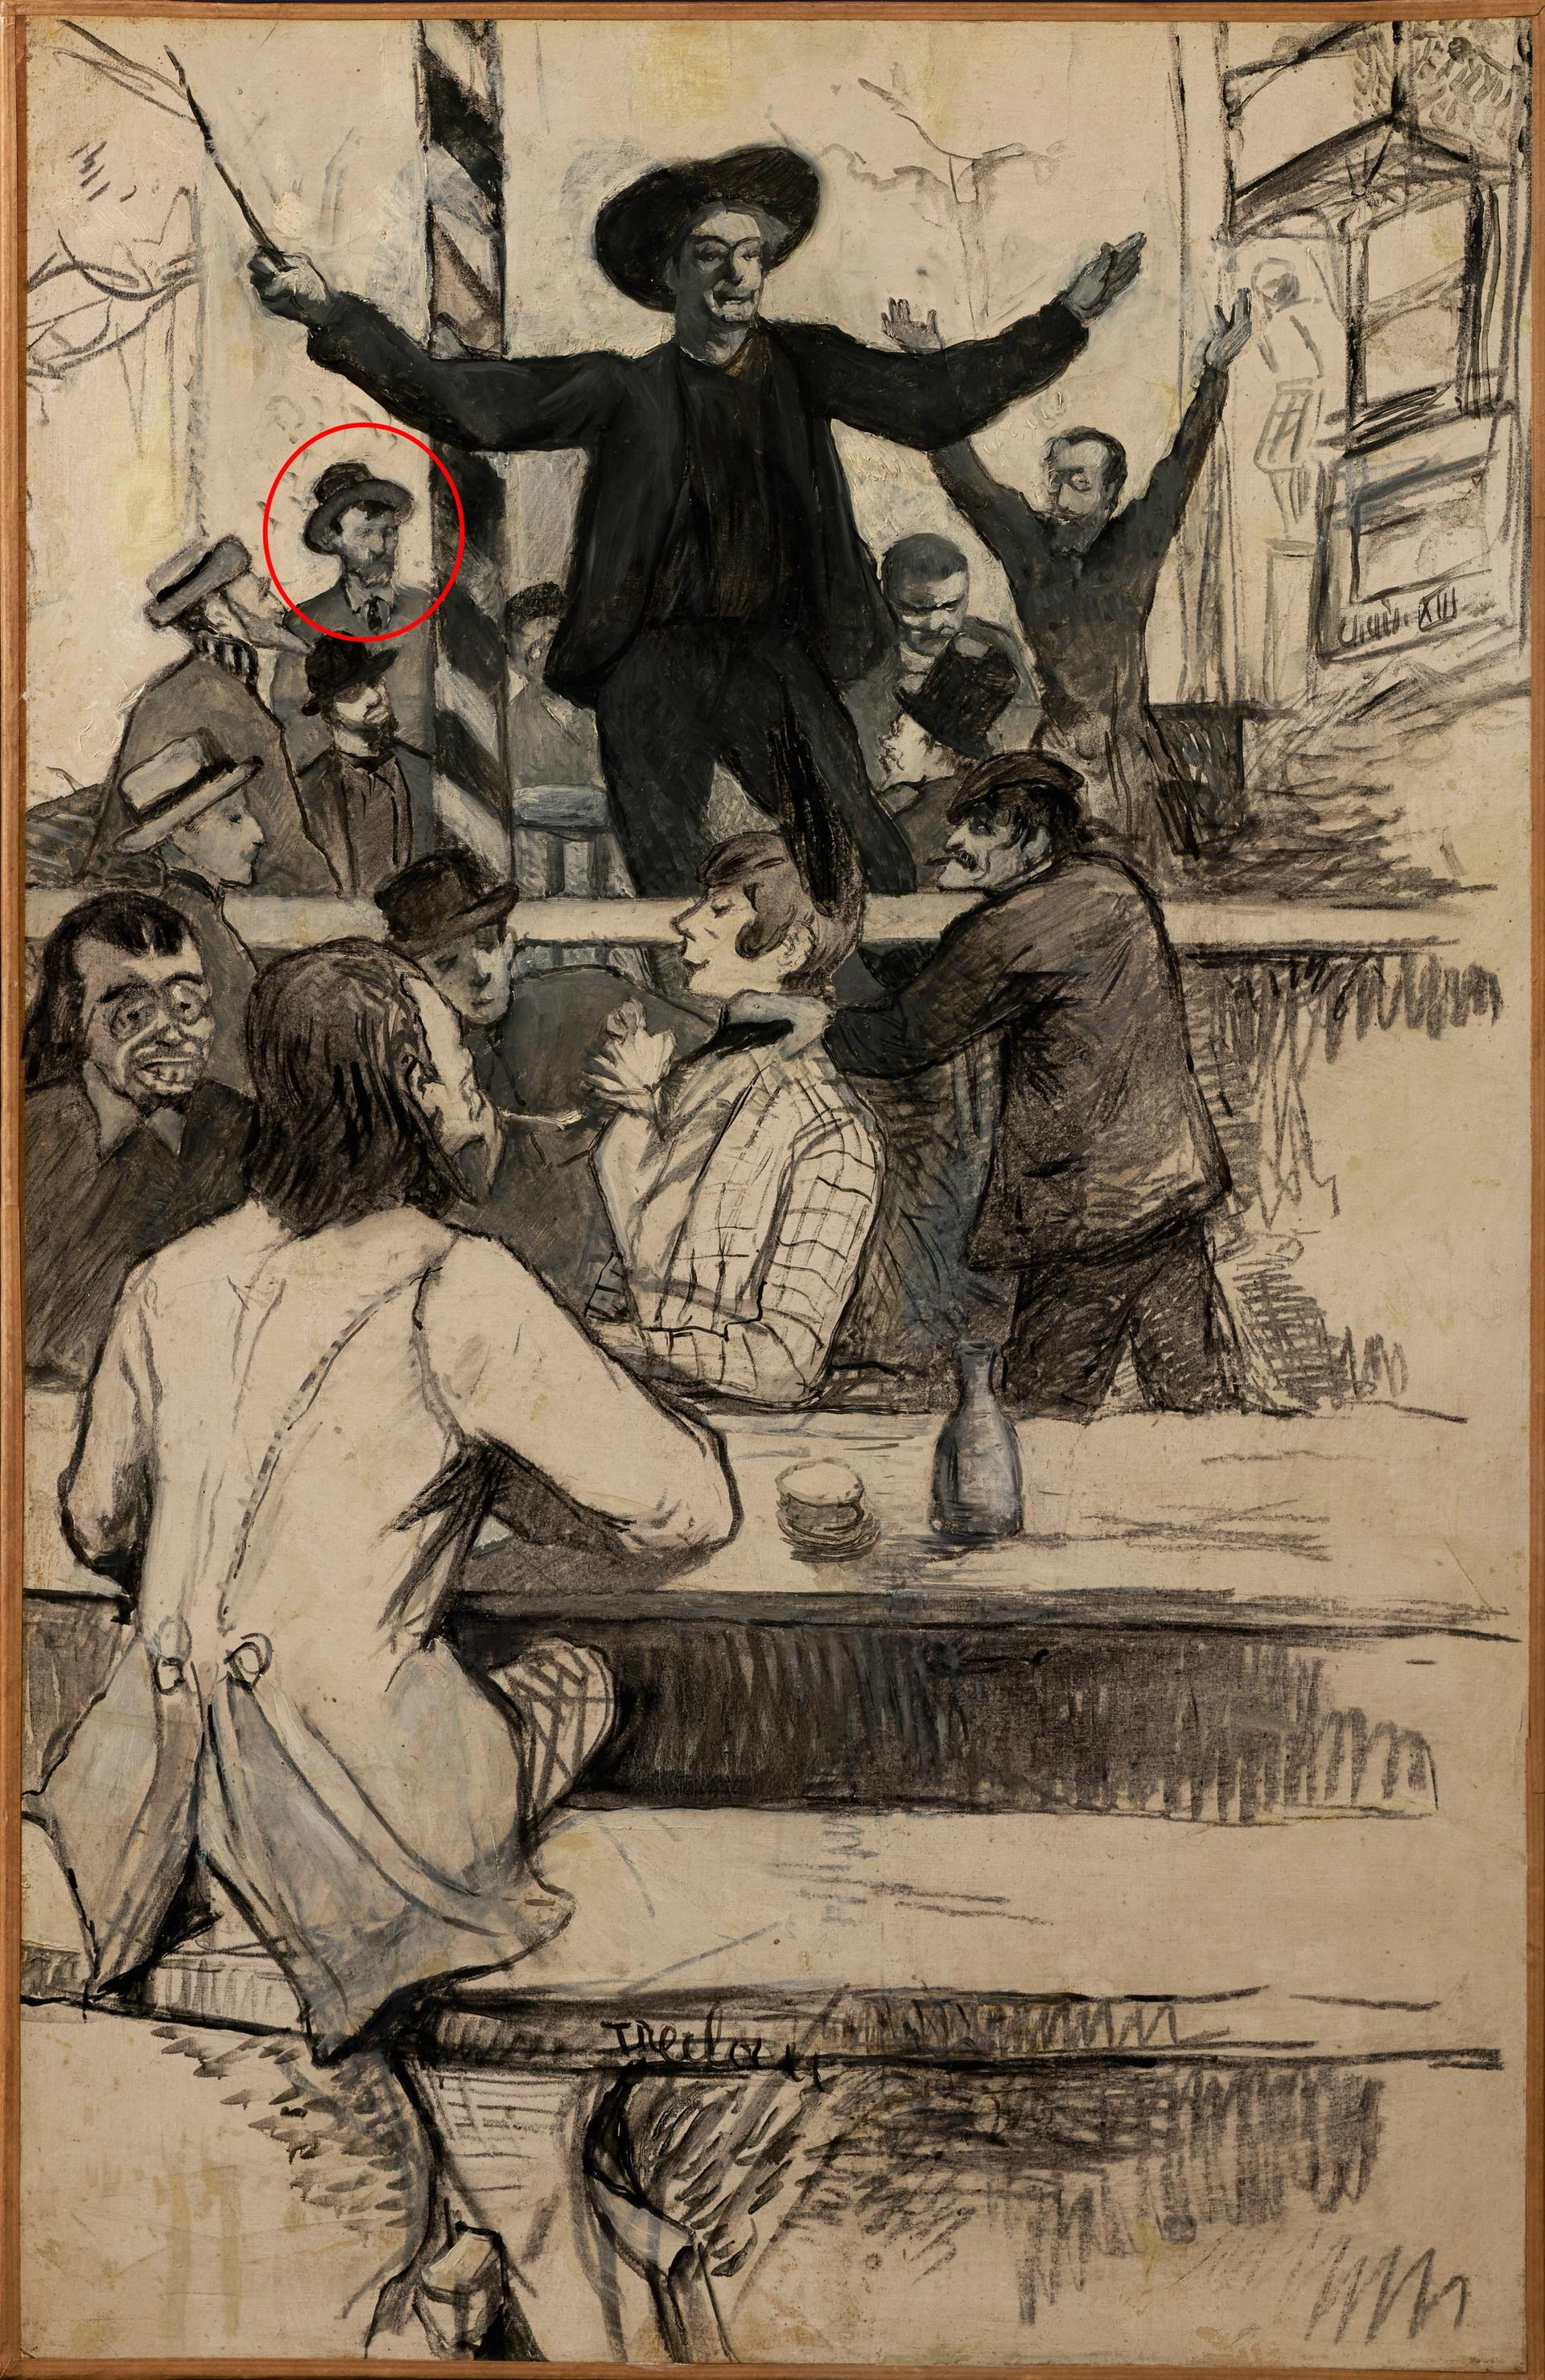 Henri de Toulouse-Lautrec's The Refrain of the Louis XIII-style Chair at the Cabaret of Aristide Bruant (1886), 78cm x 50cm, with Van Gogh circled Courtesy of Hiroshima Museum of Art